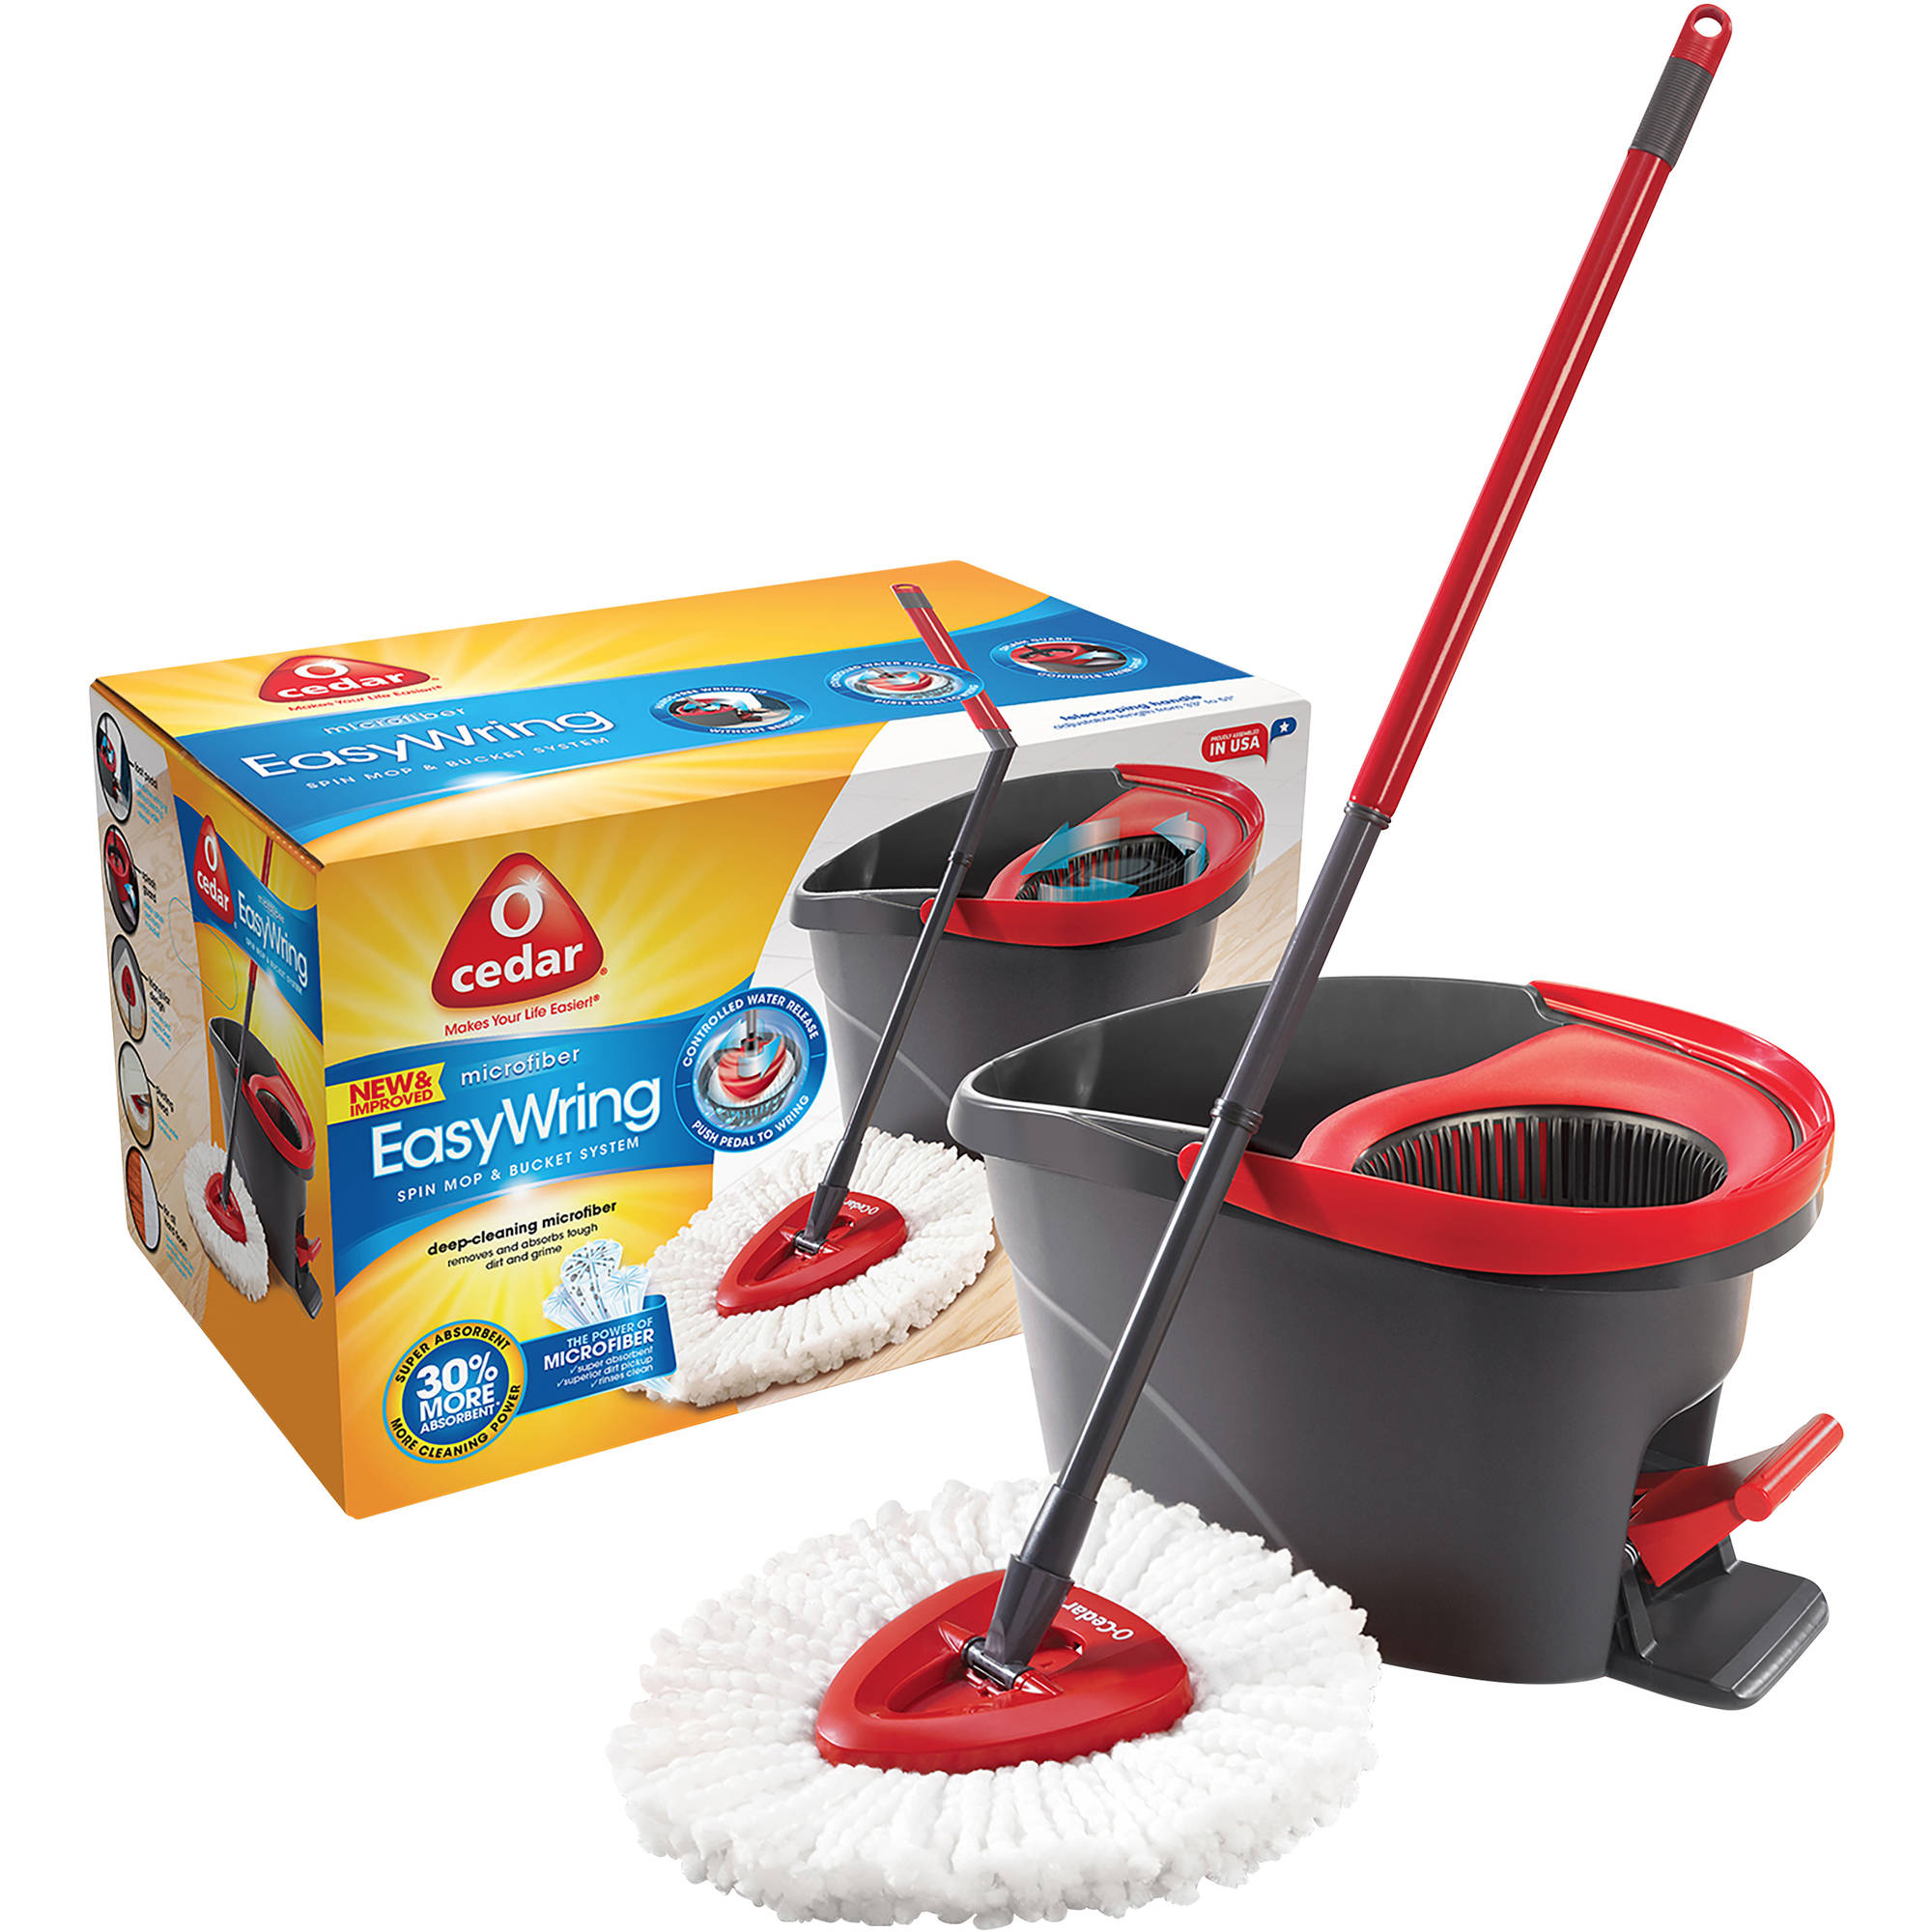 O-Cedar Microfiber EasyWring Spin Mop & Bucket System, 3 pc